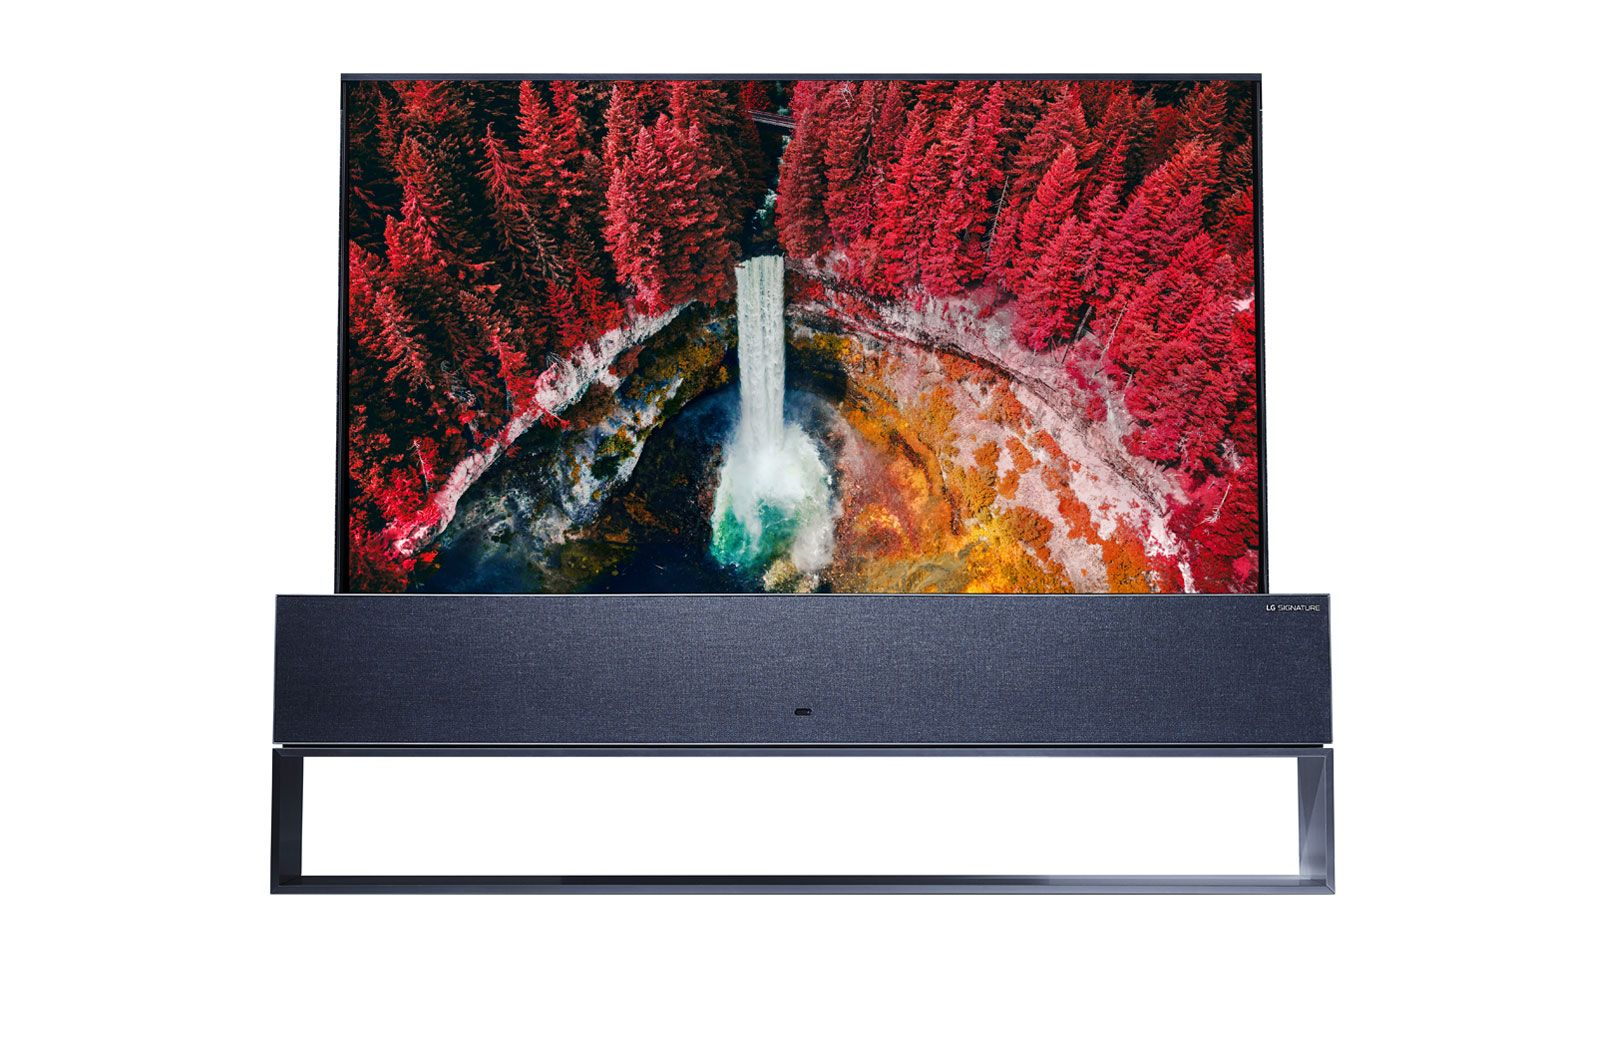 LG ZX, WX, GX, CX and BX 2020 Smart TV Lineup Official Pricing and Availability in United States